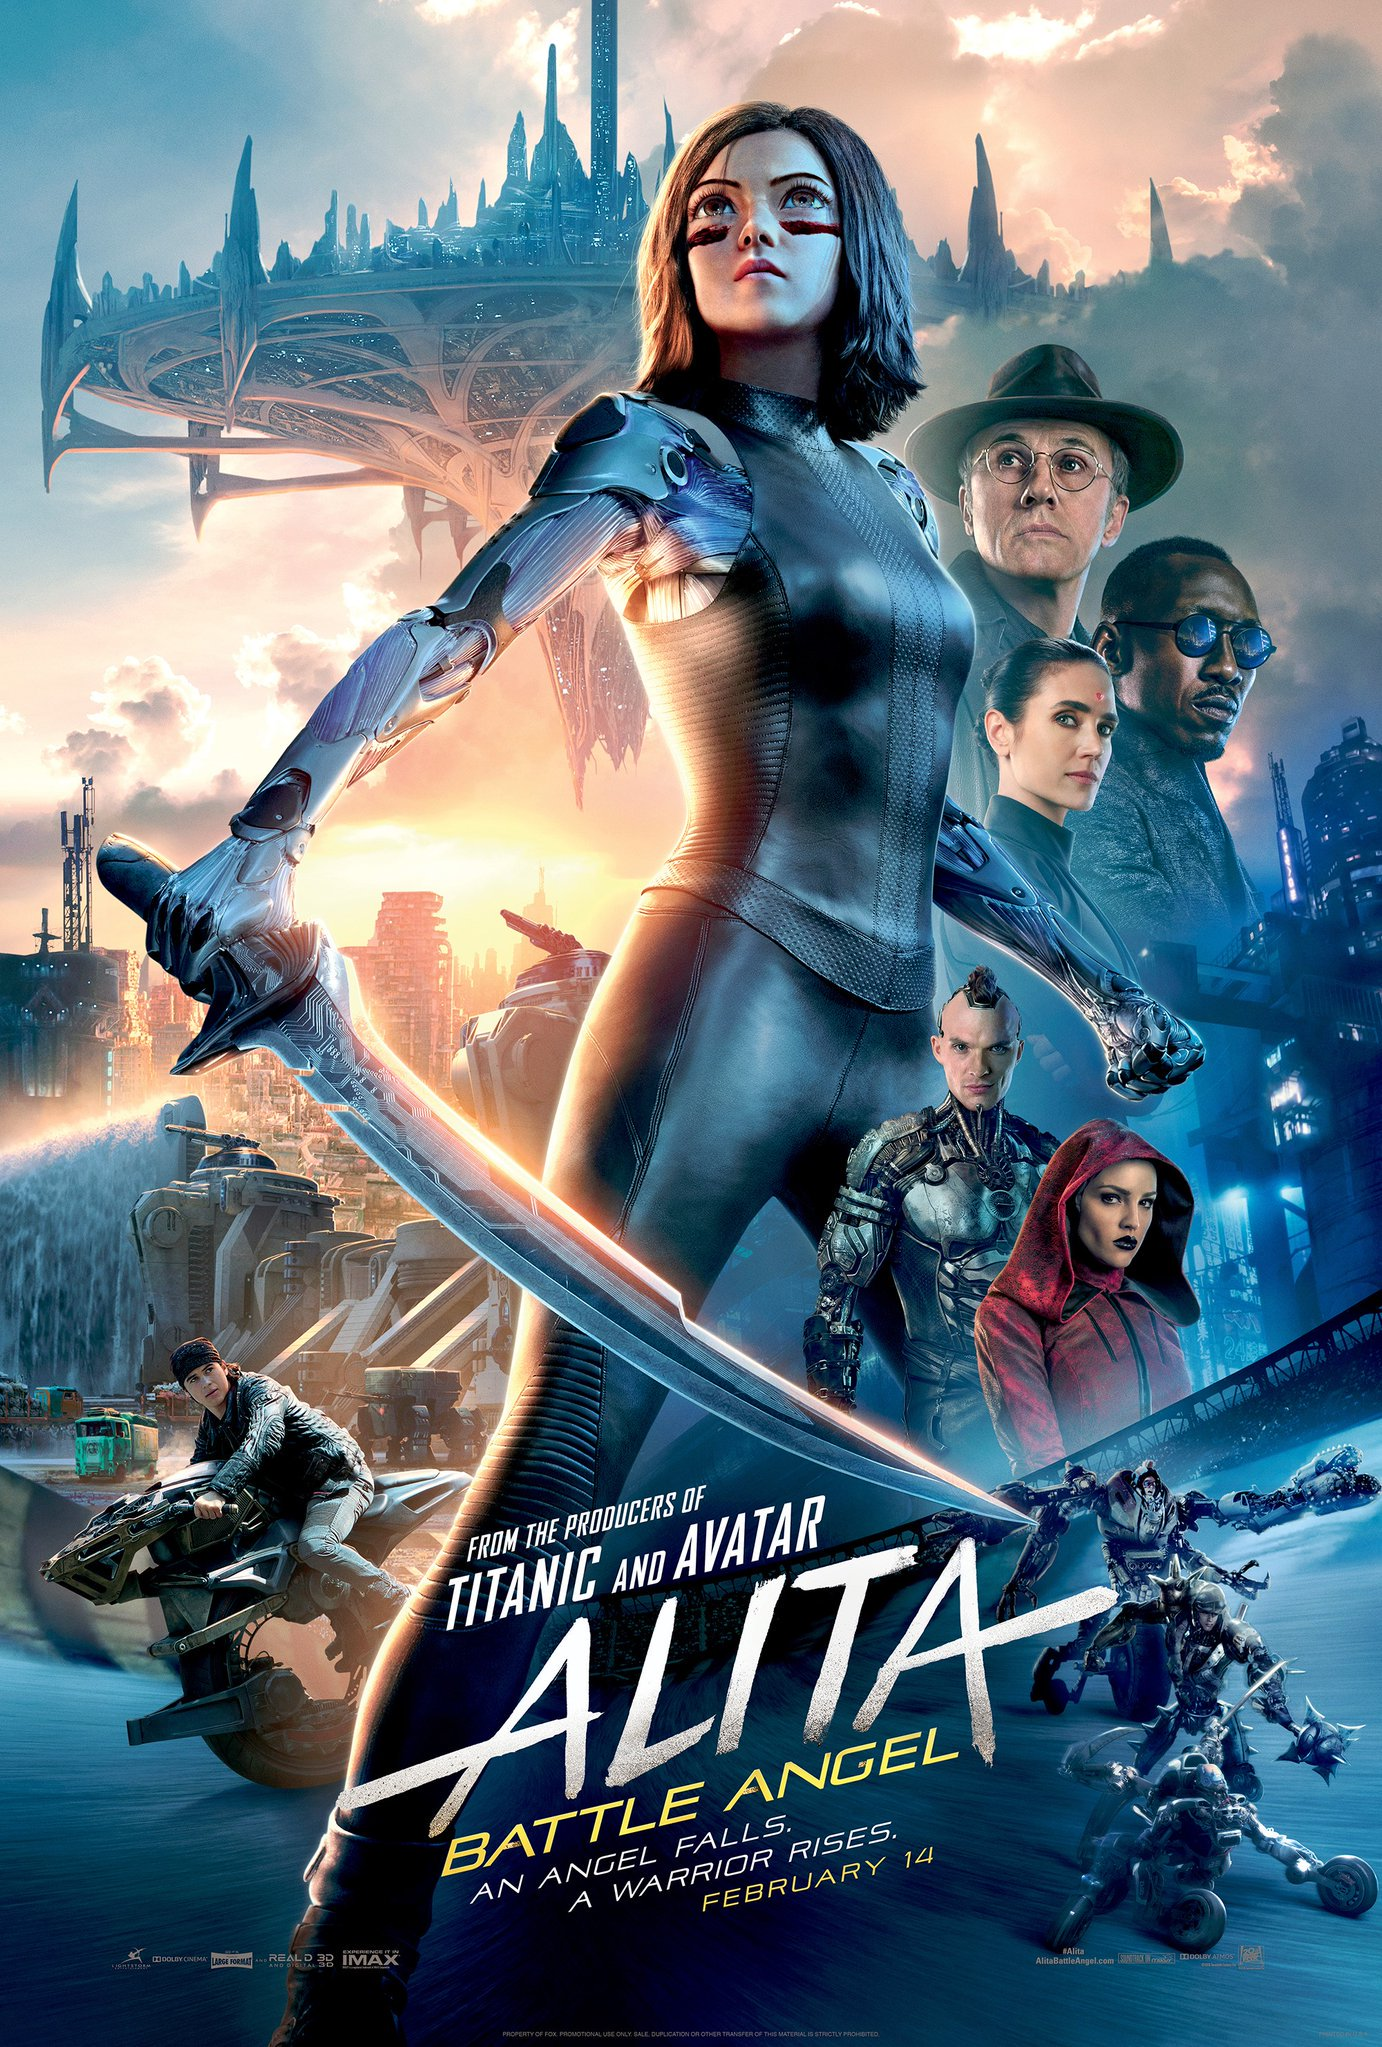 a warrior rises on latest poster for robert rodriguez u2019s